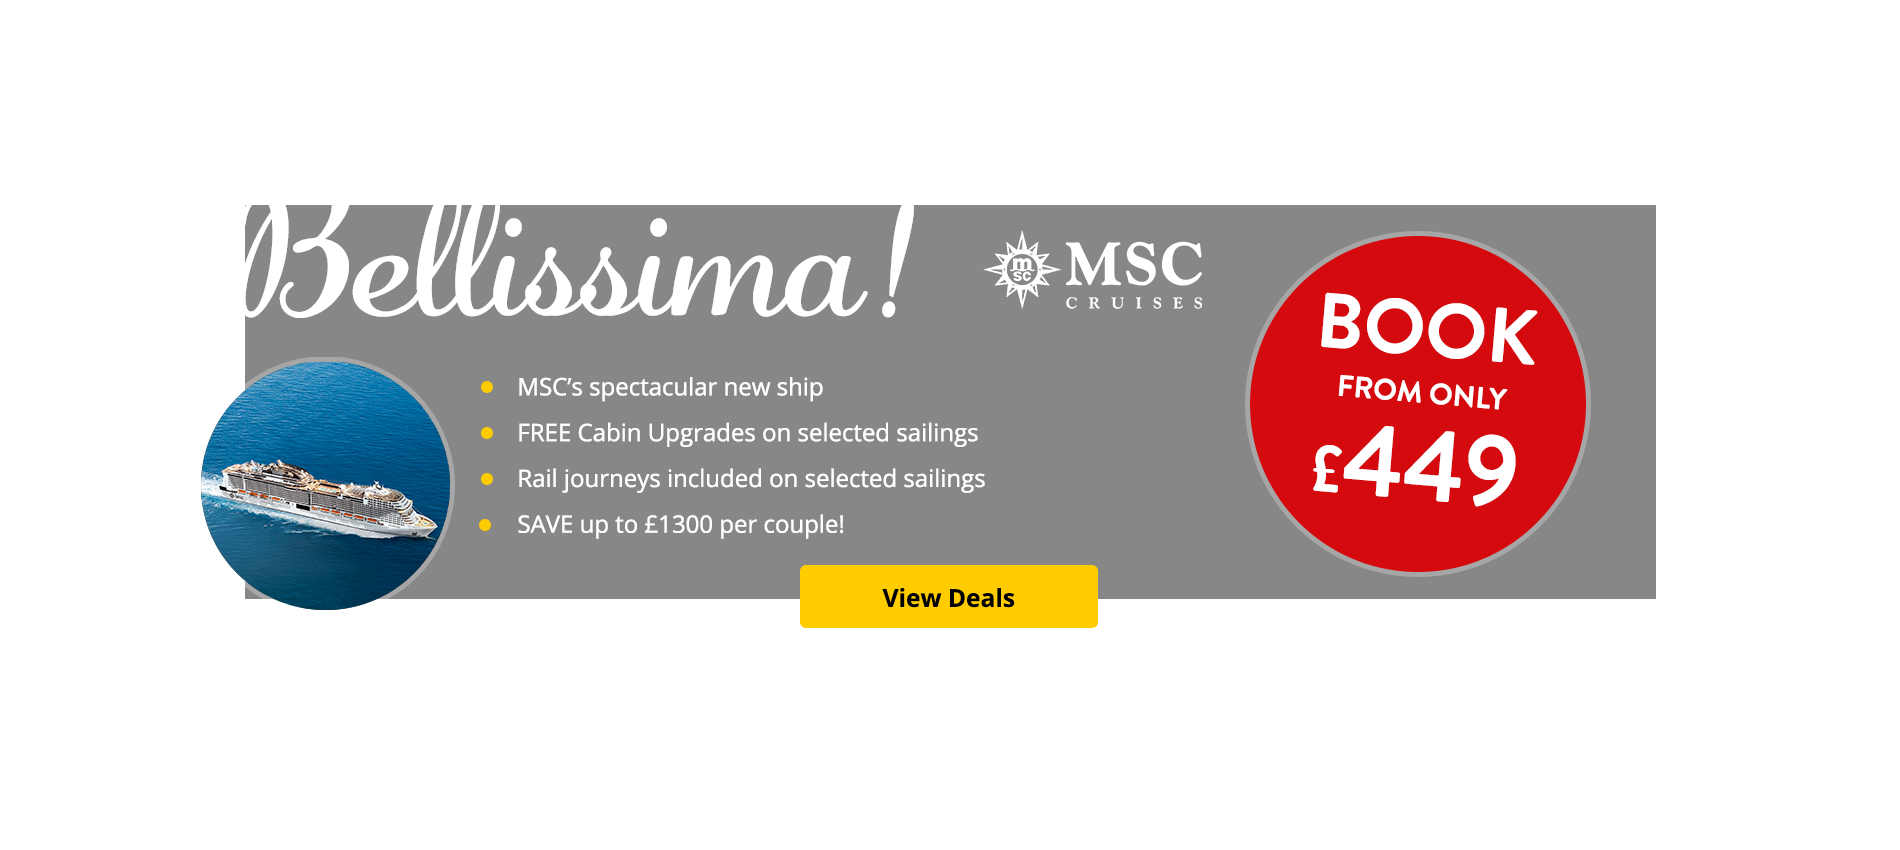 The best deals on the brand new MSC Bellissima in the UK